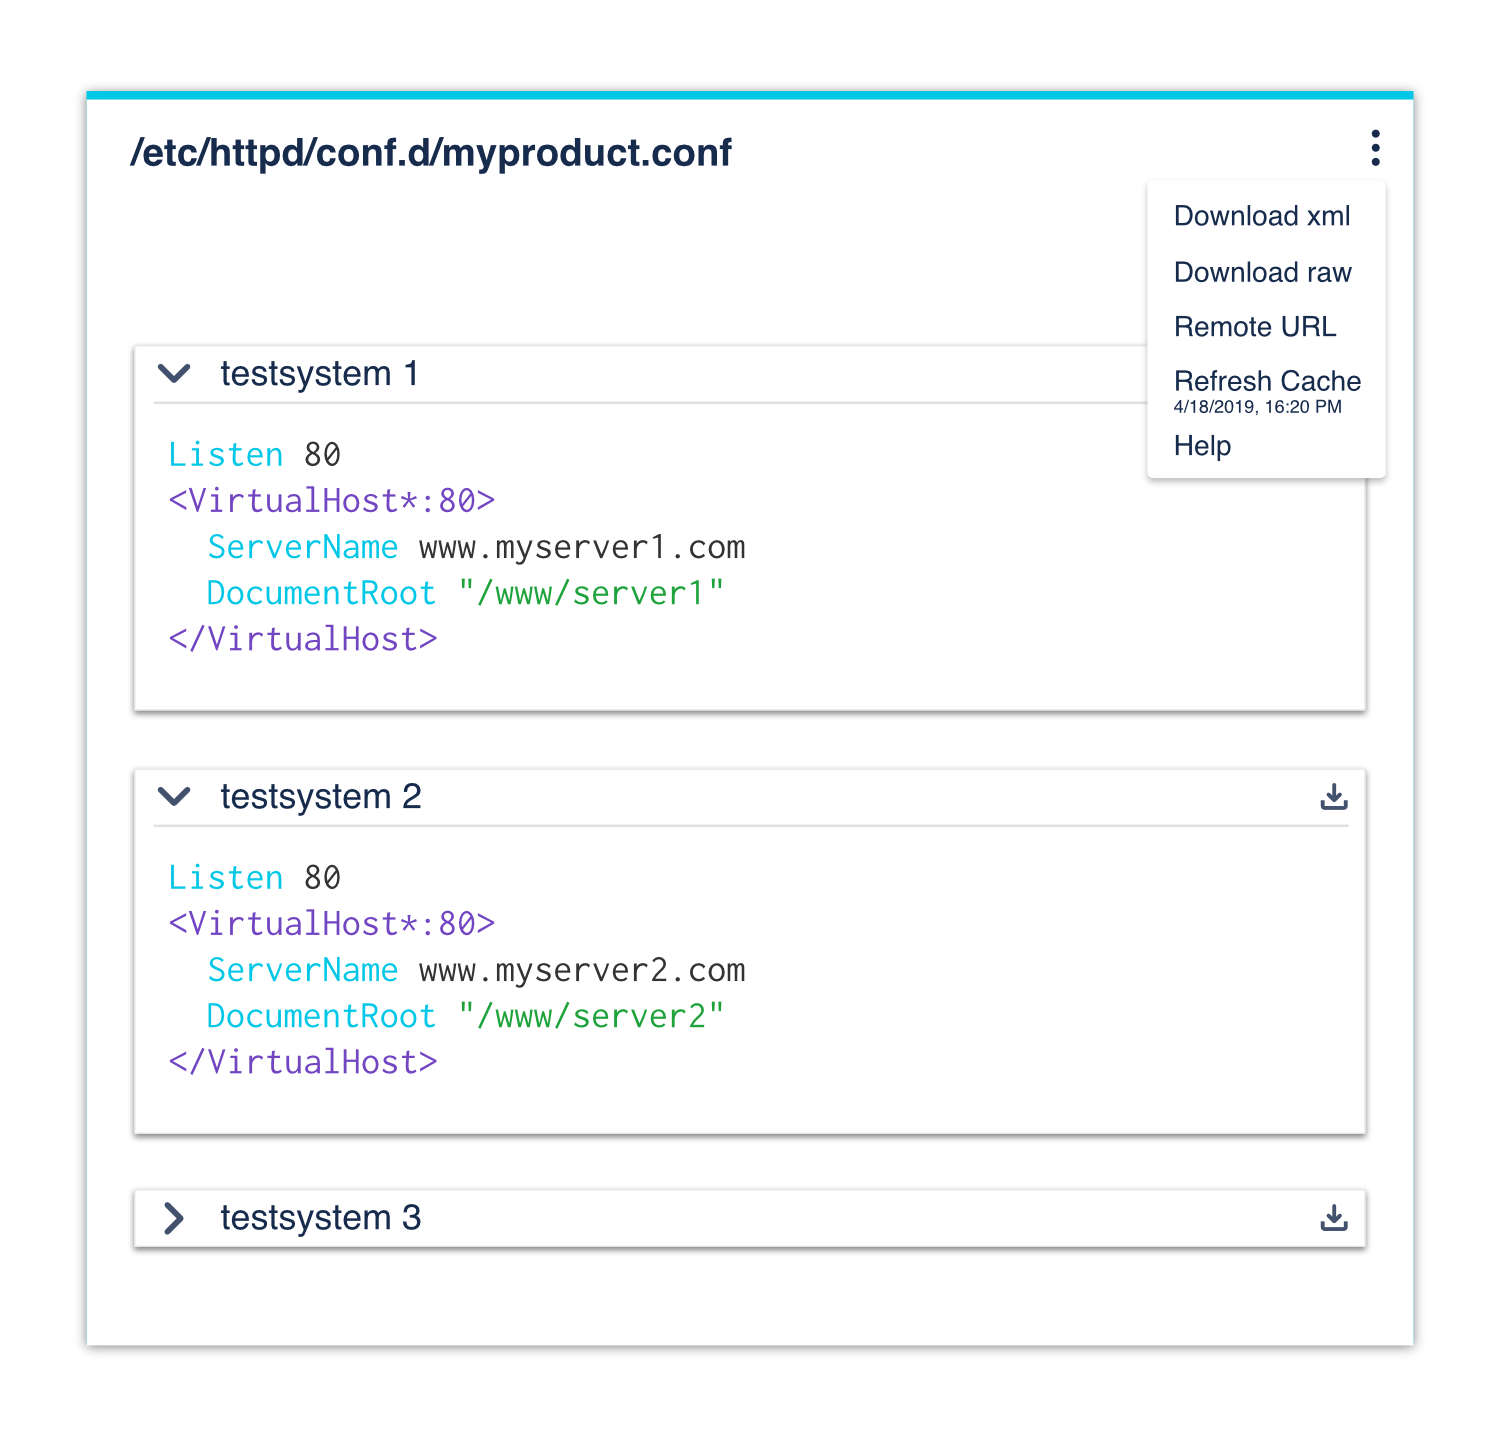 The Advanced Codeblocks Remote is used for inserting the config-block directly in Confluence but the template from any source.